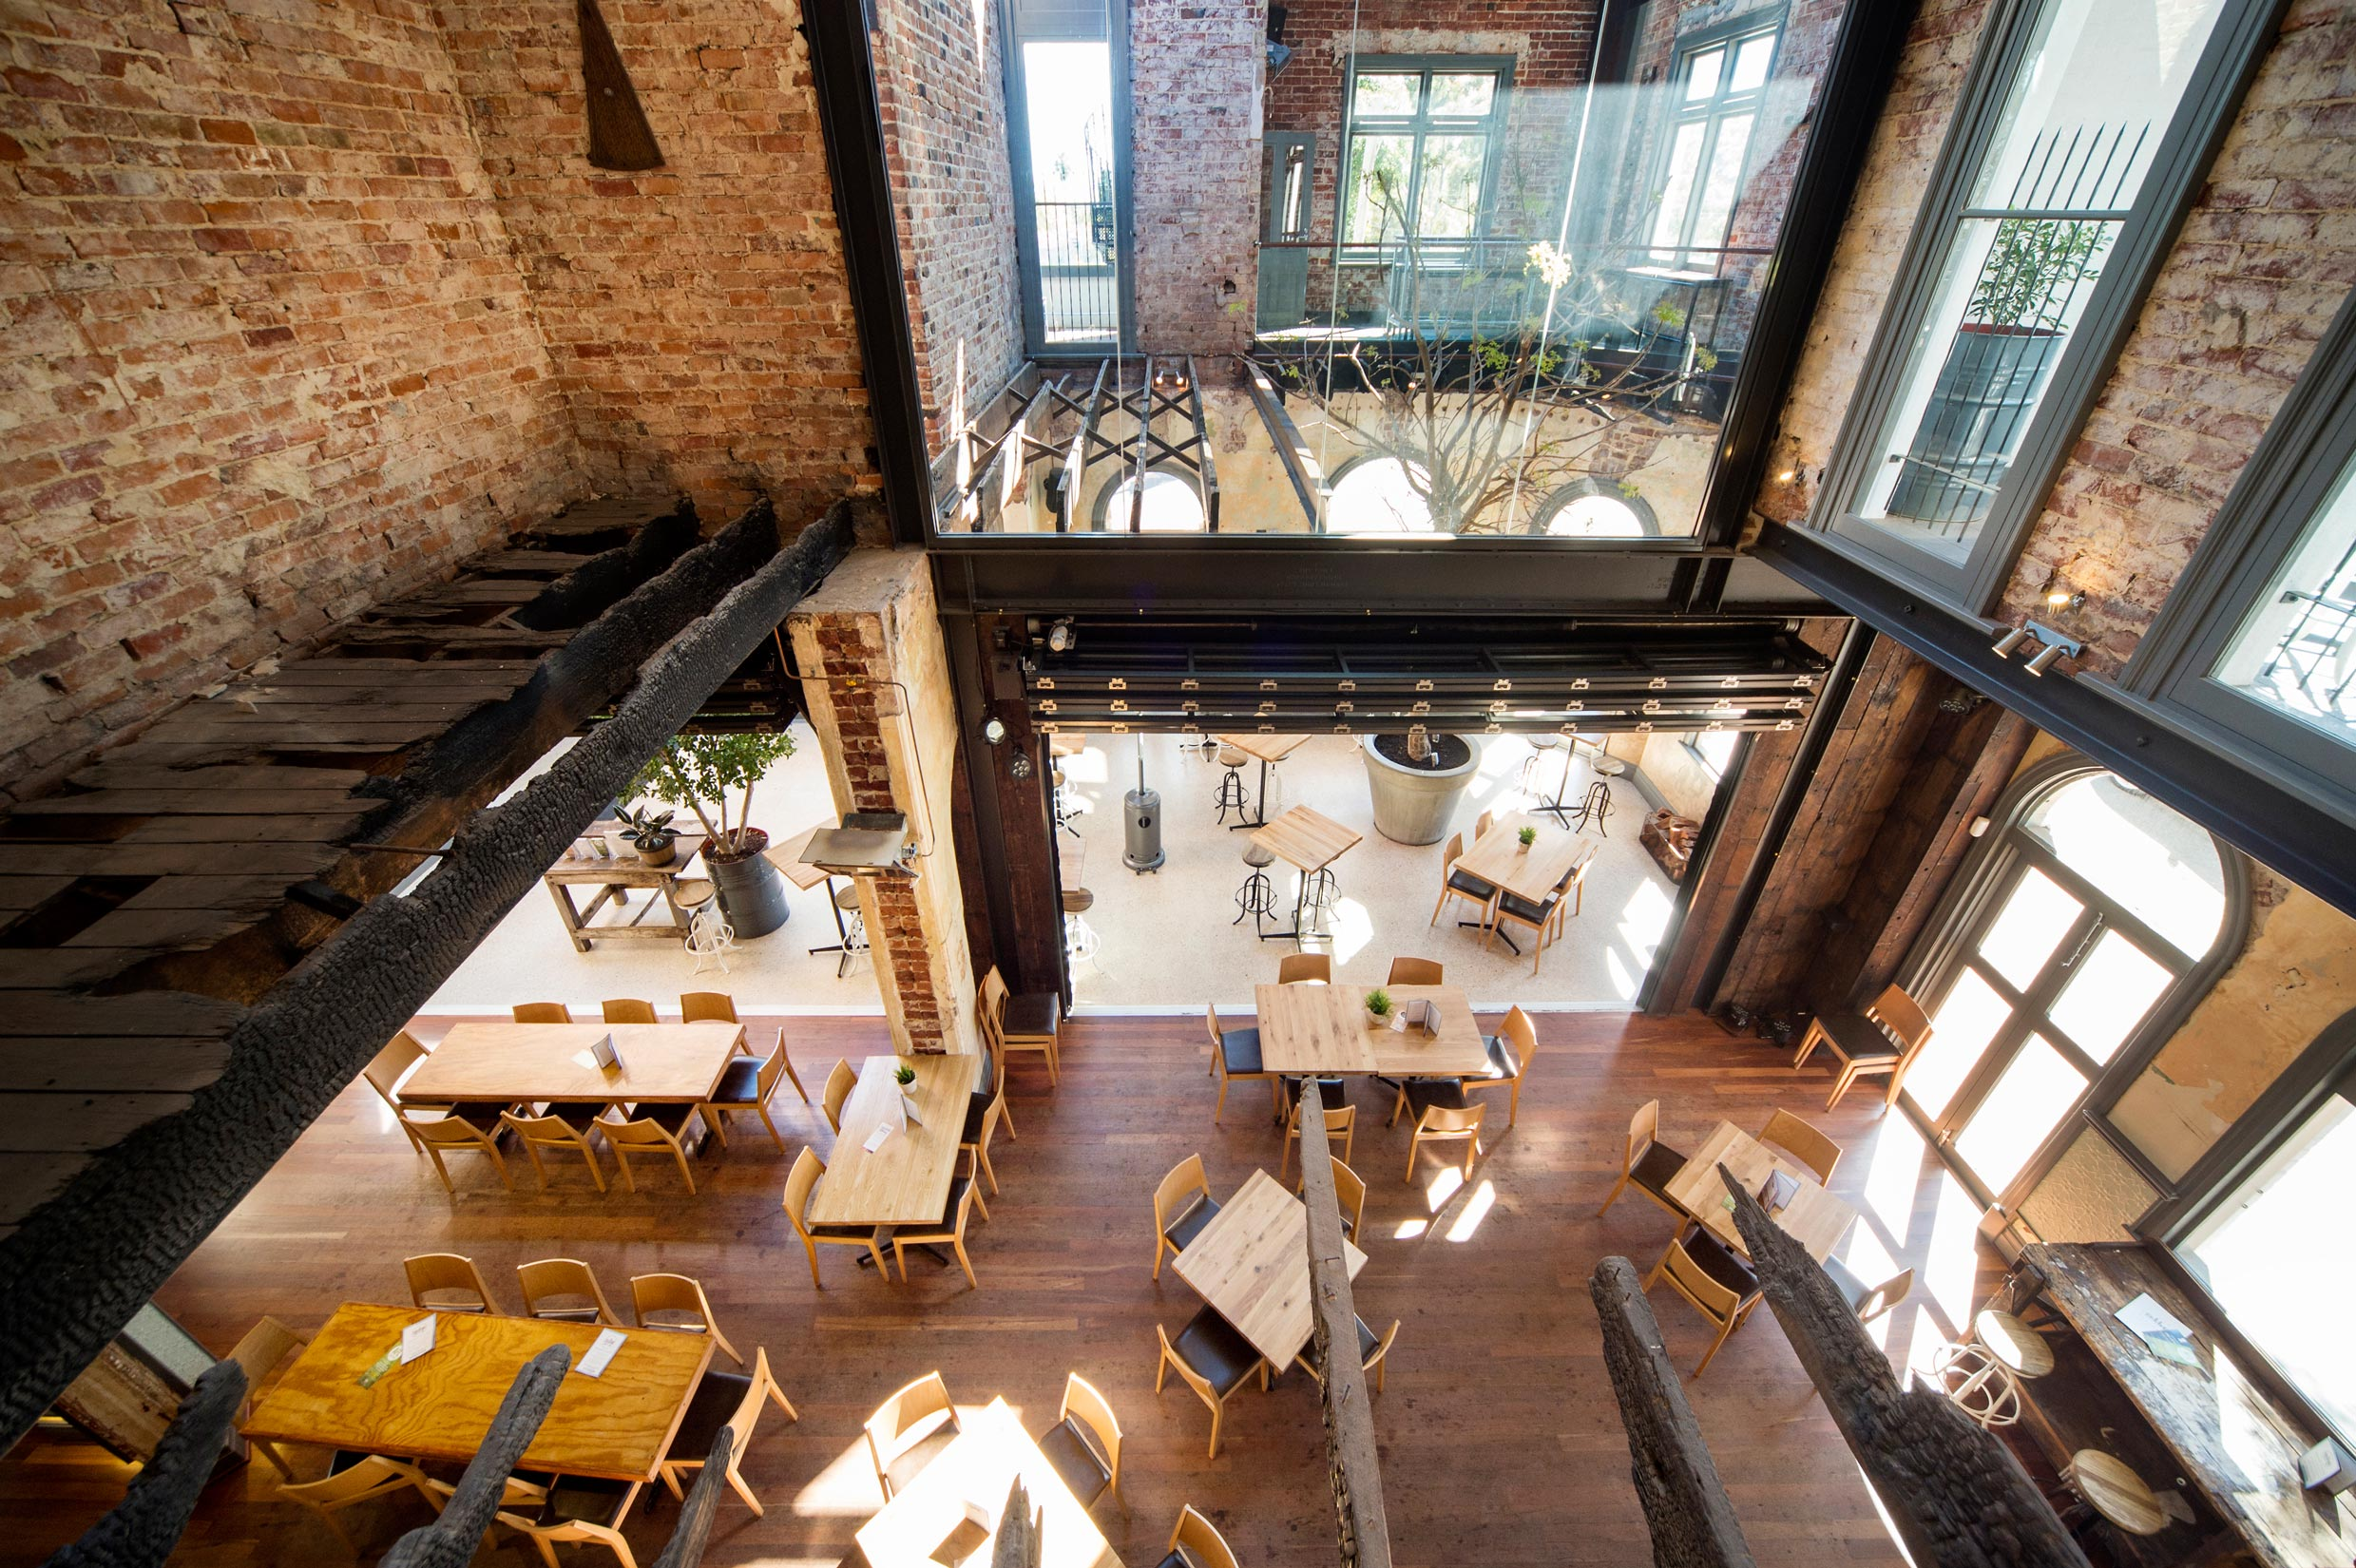 The Guildford Hotel heritage dining room with restored brick walls, steel beams and original burnt timber beams